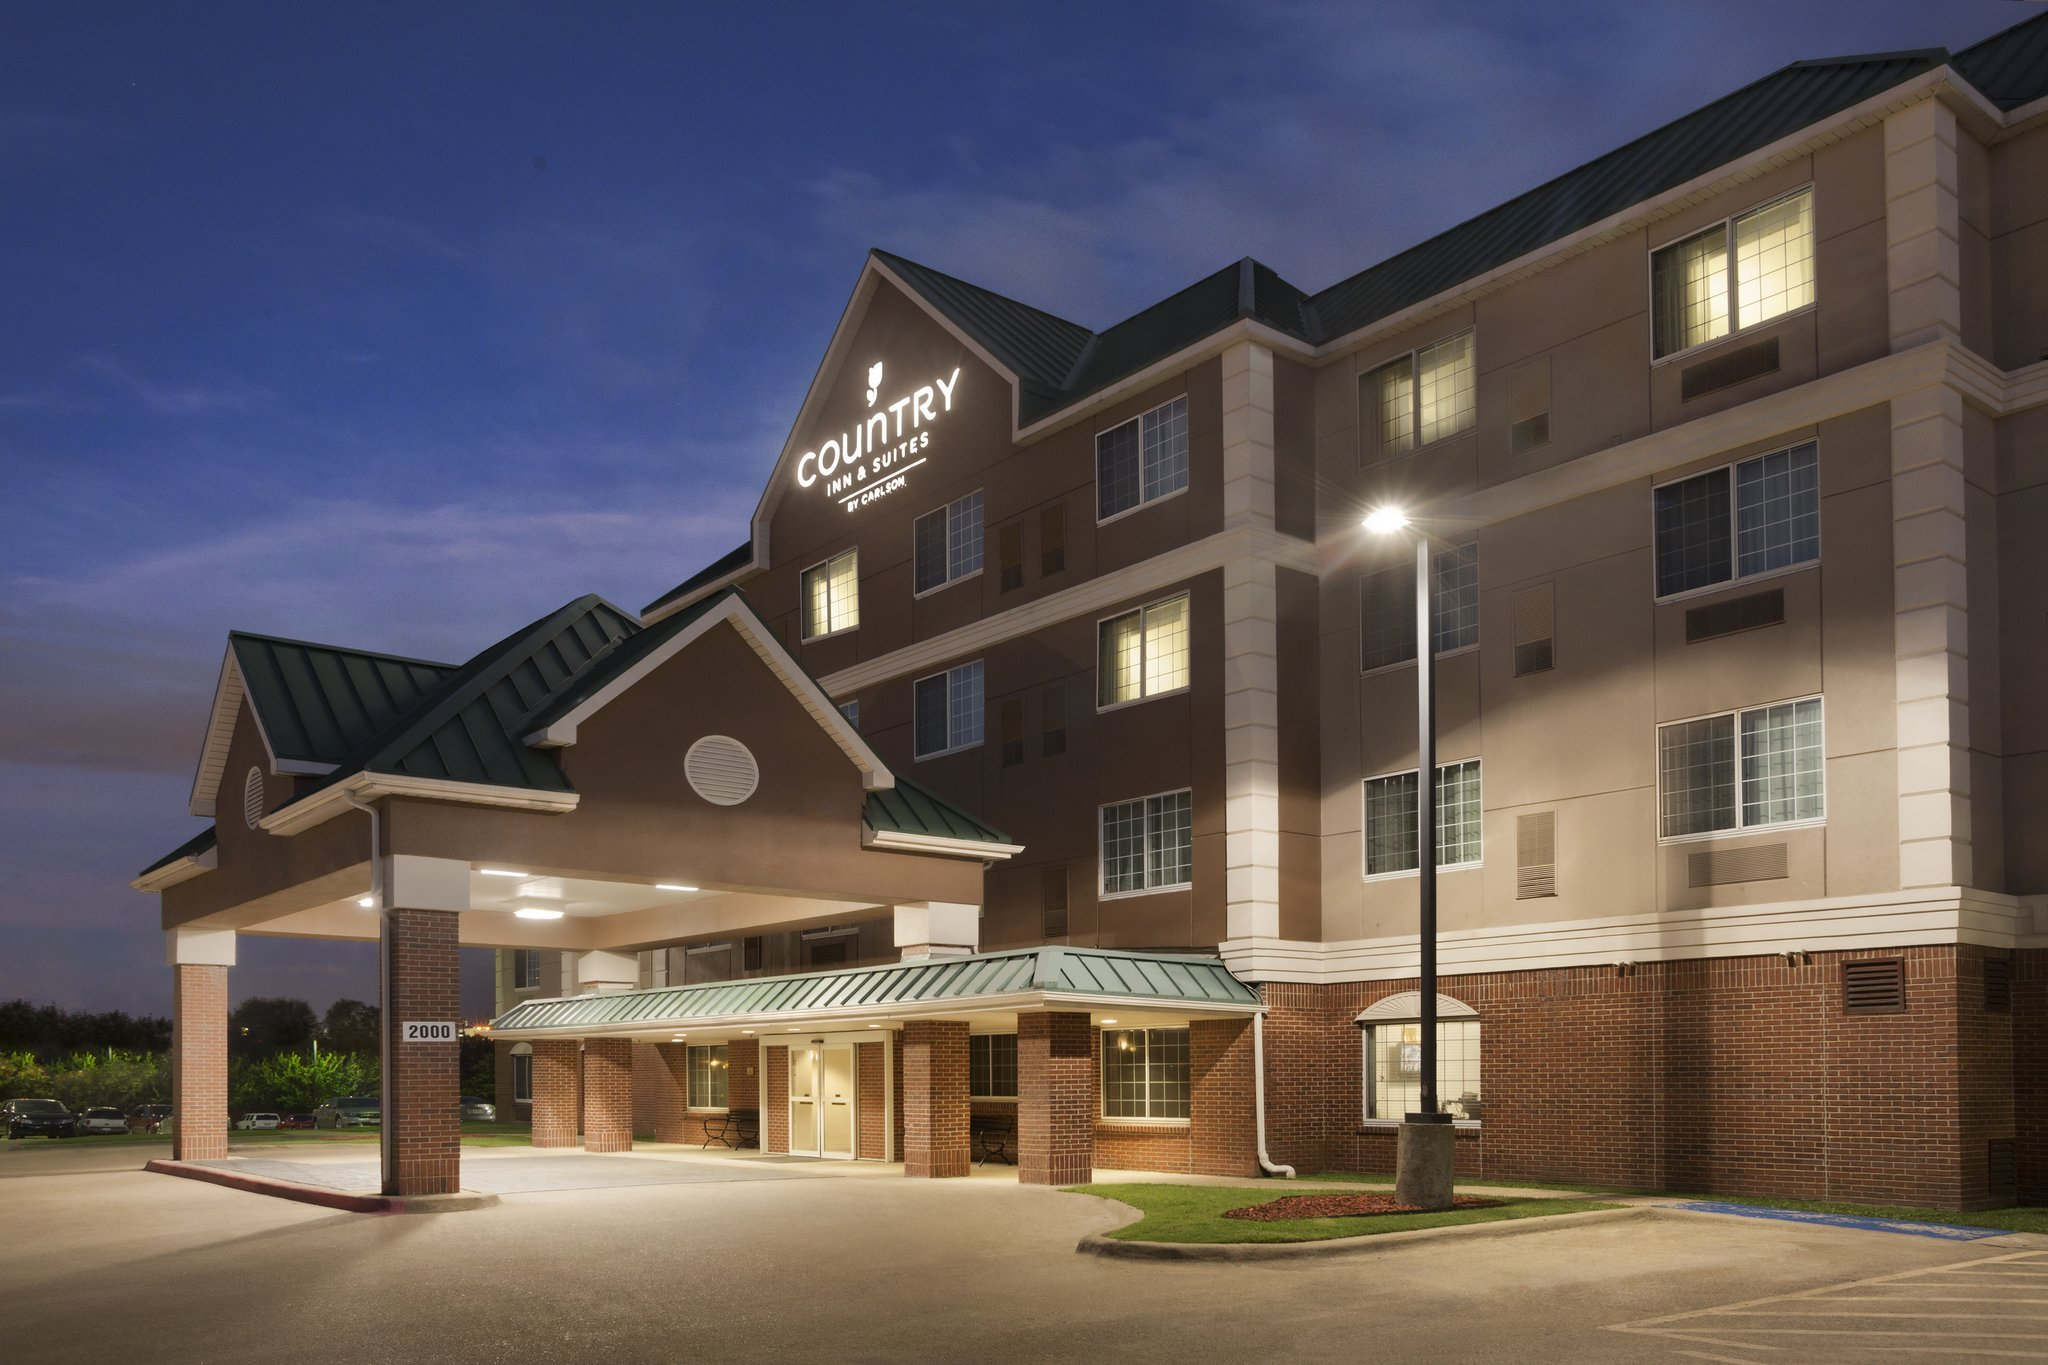 Country Inn and Suites, DFW South, Irving Texas